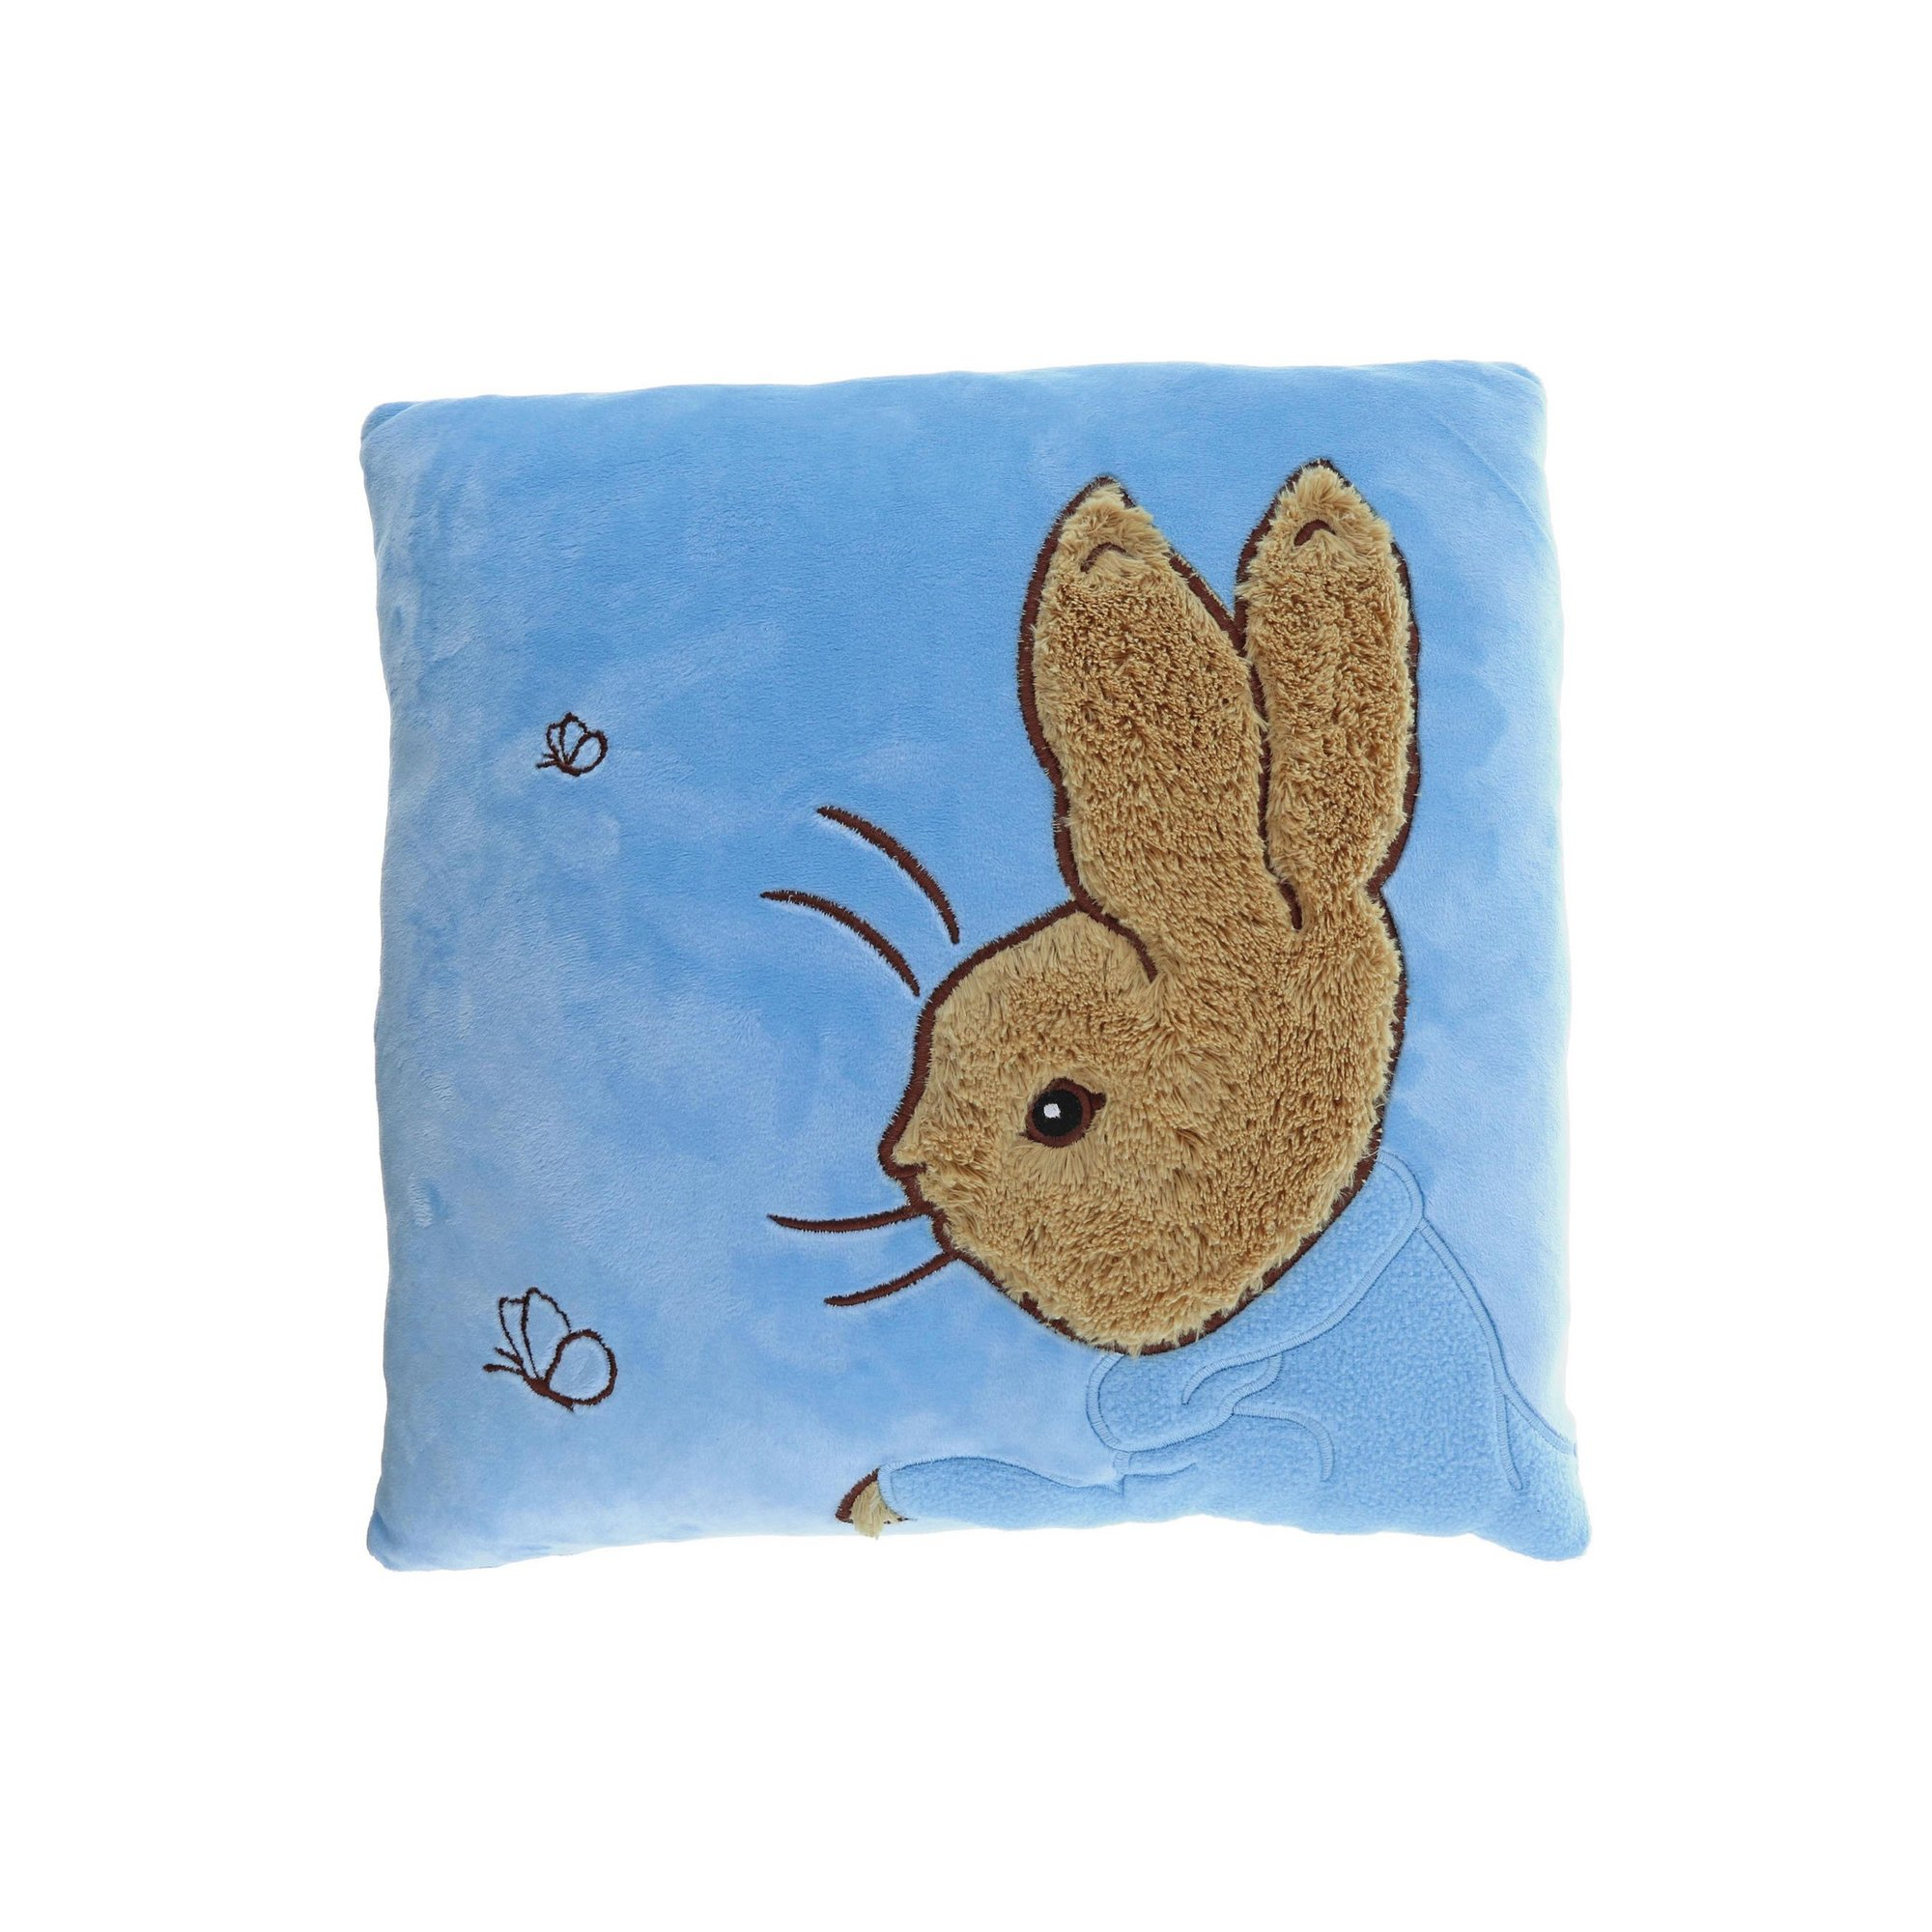 Image of Gund Peter Rabbit Cushion